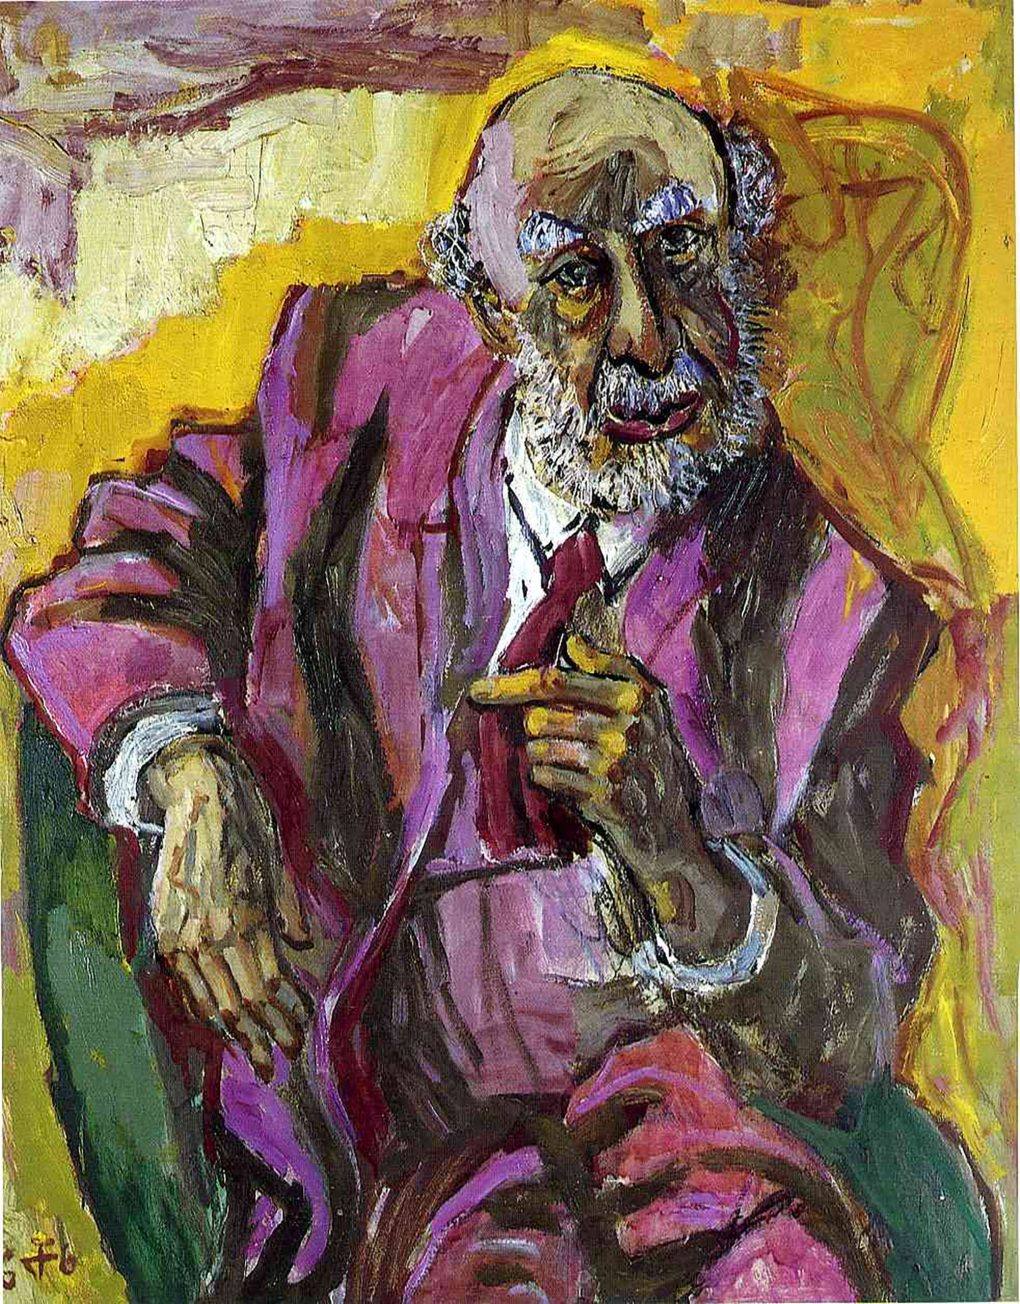 Fritz Perls as painted by Otto Dix in 1966. Oil on canvas.